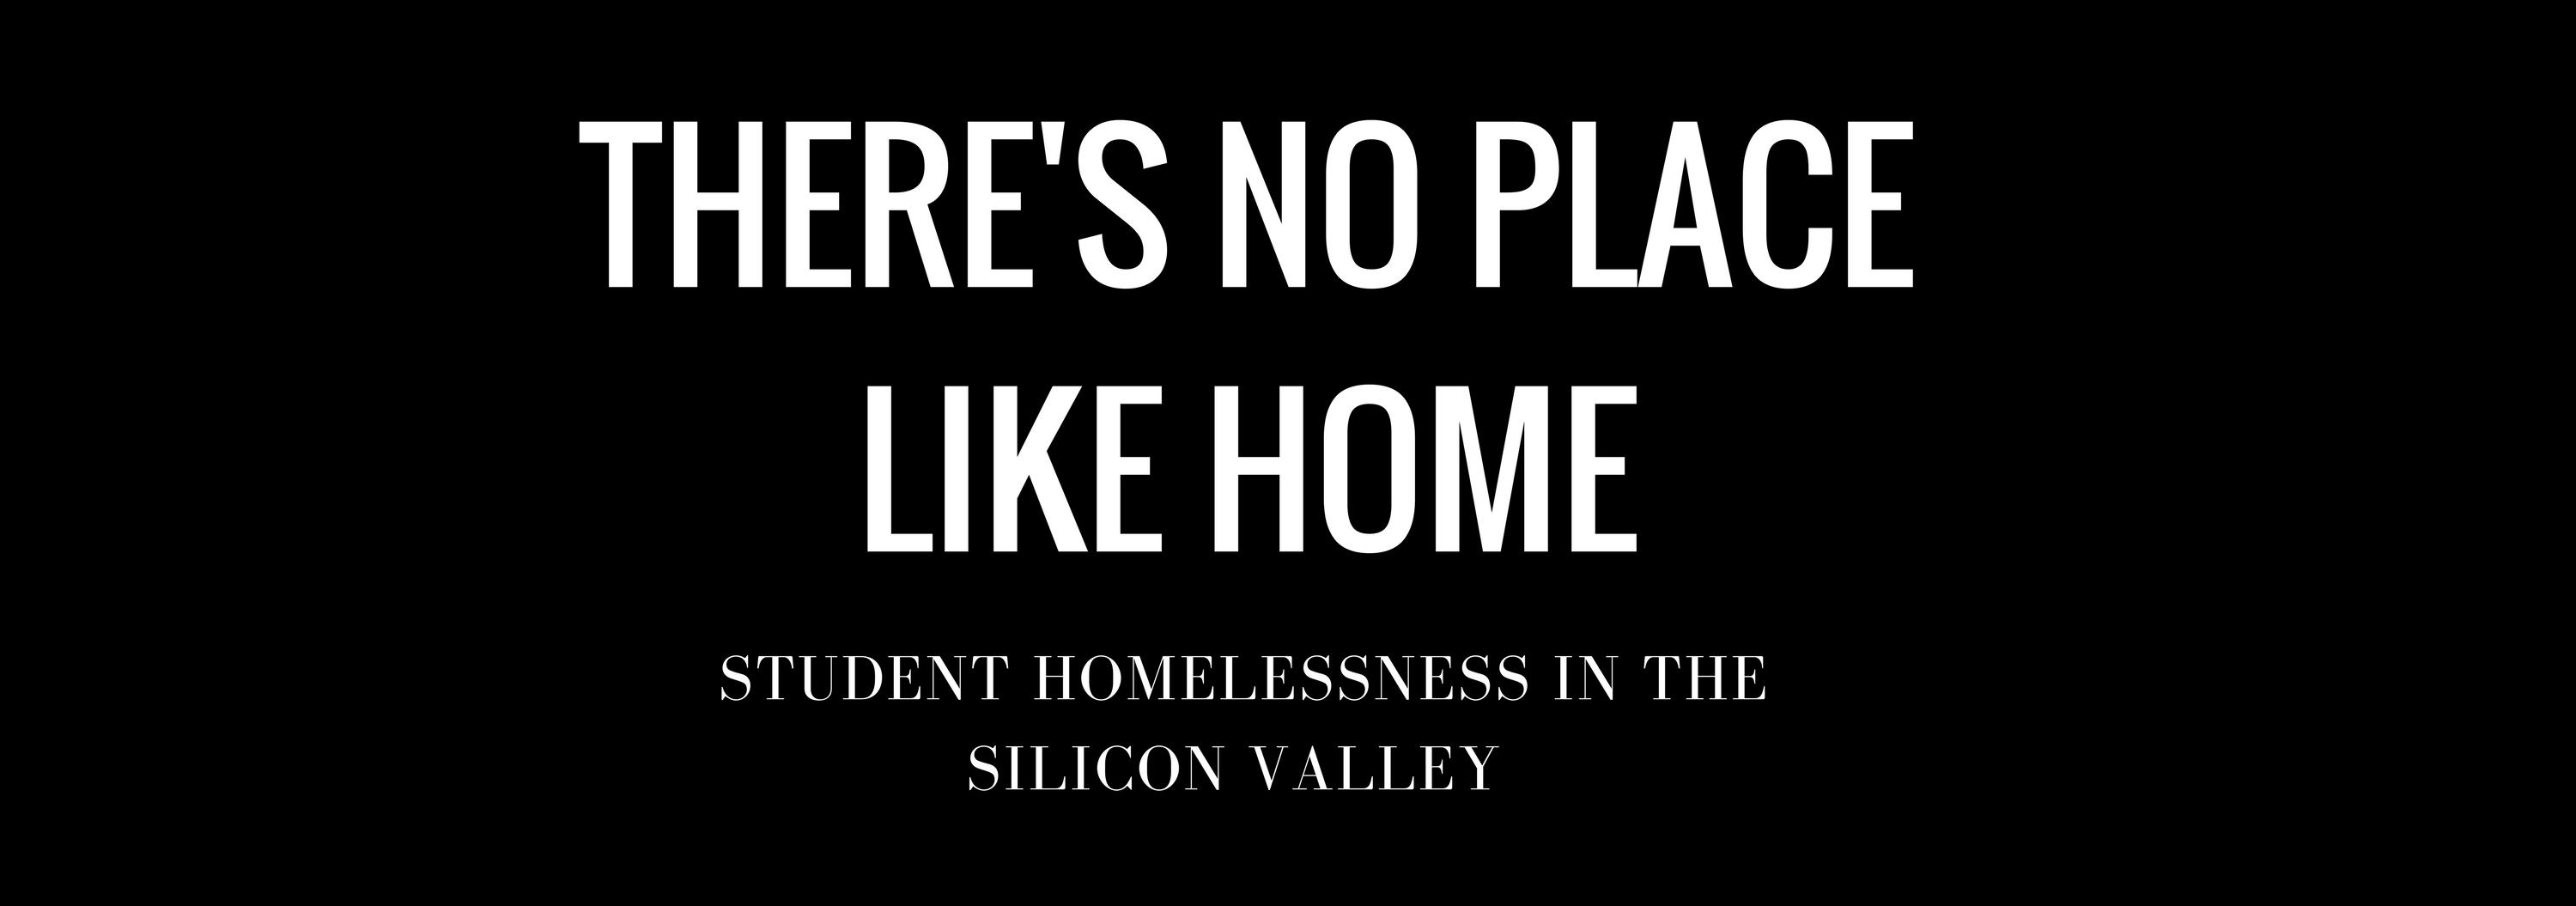 Theres no place like home Student Homelessness in the Silicon